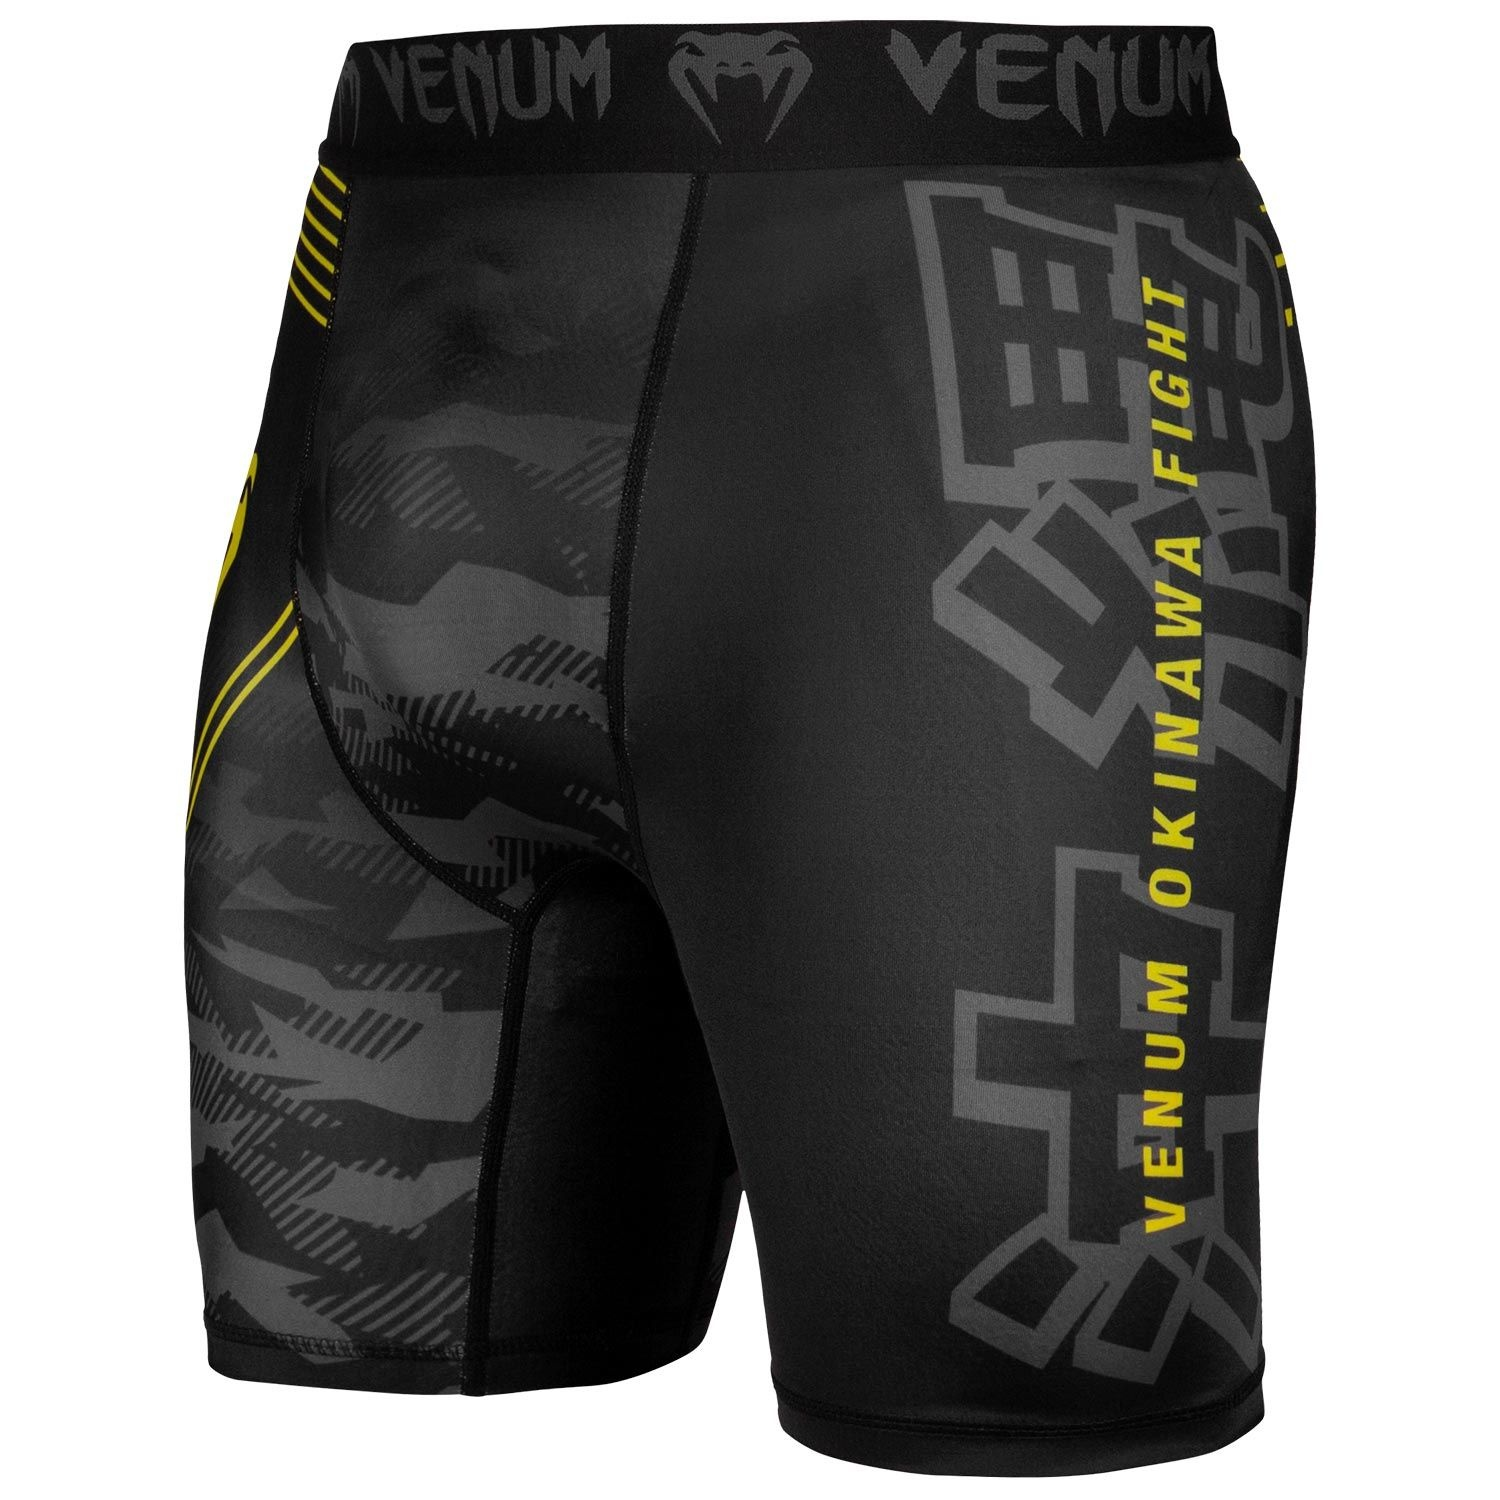 Venum Okinawa 2.0 MMA Fight Shorts Black//Yellow